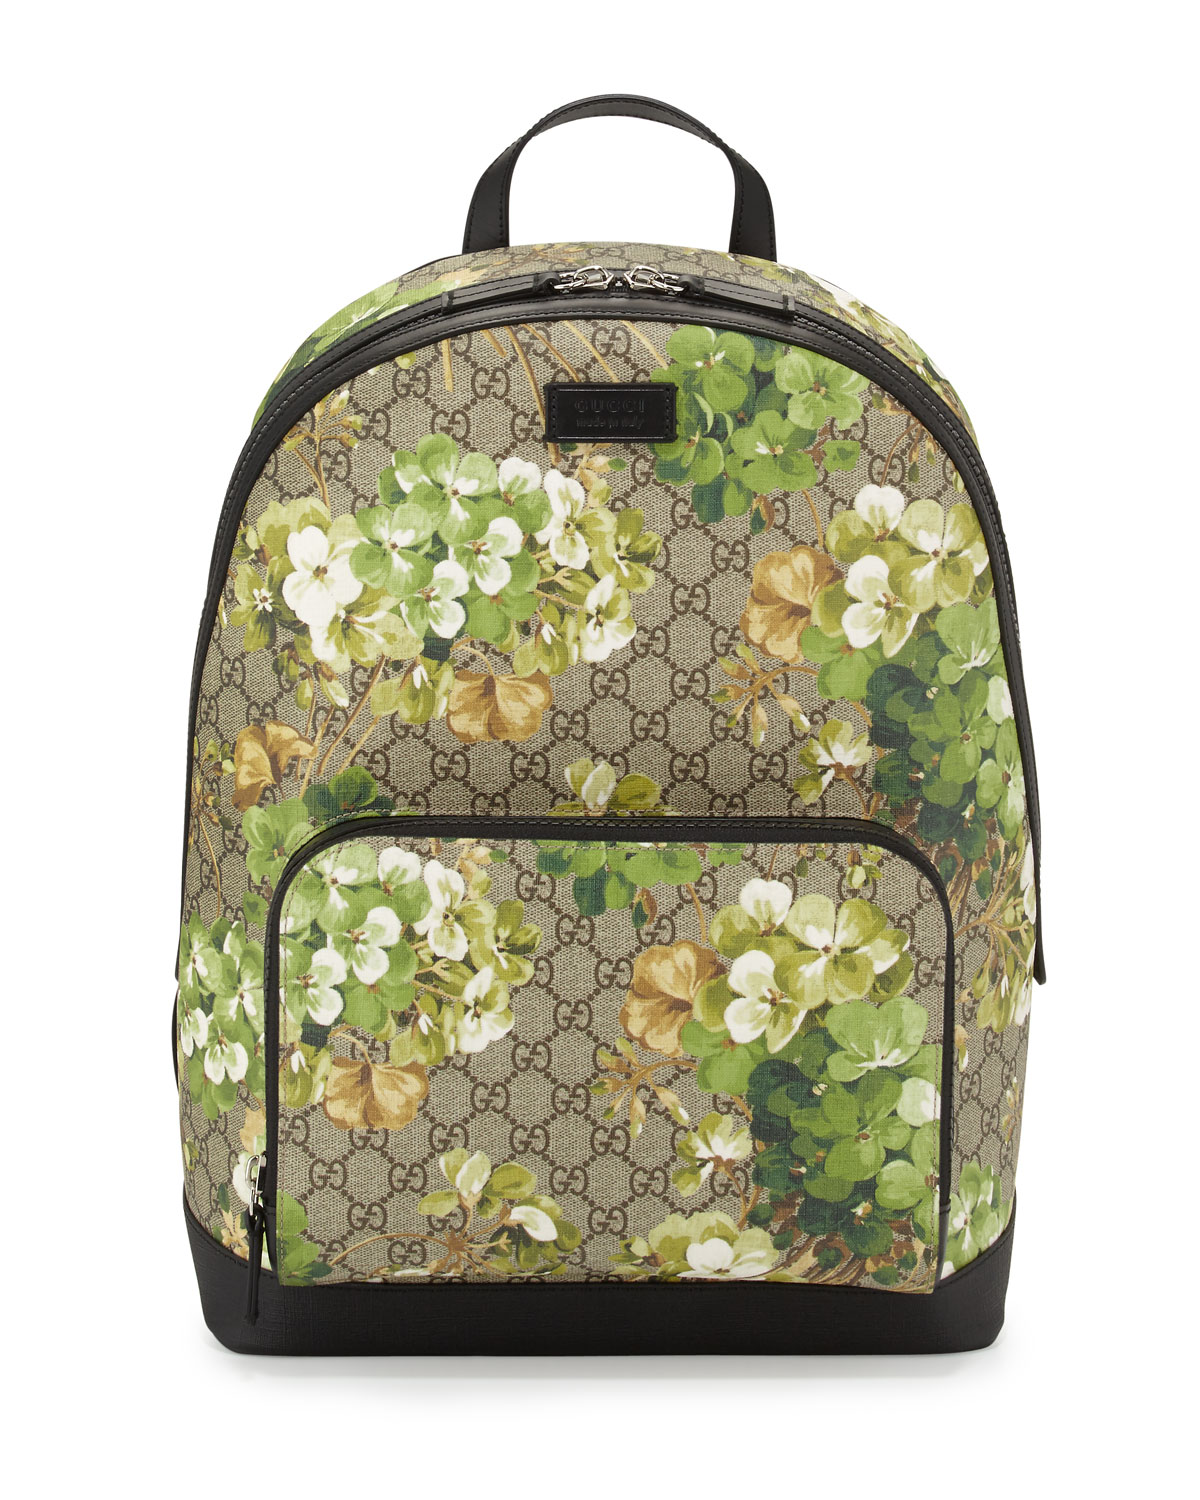 86880c152eda Gucci GG Blooms Canvas Backpack, Multi | Neiman Marcus